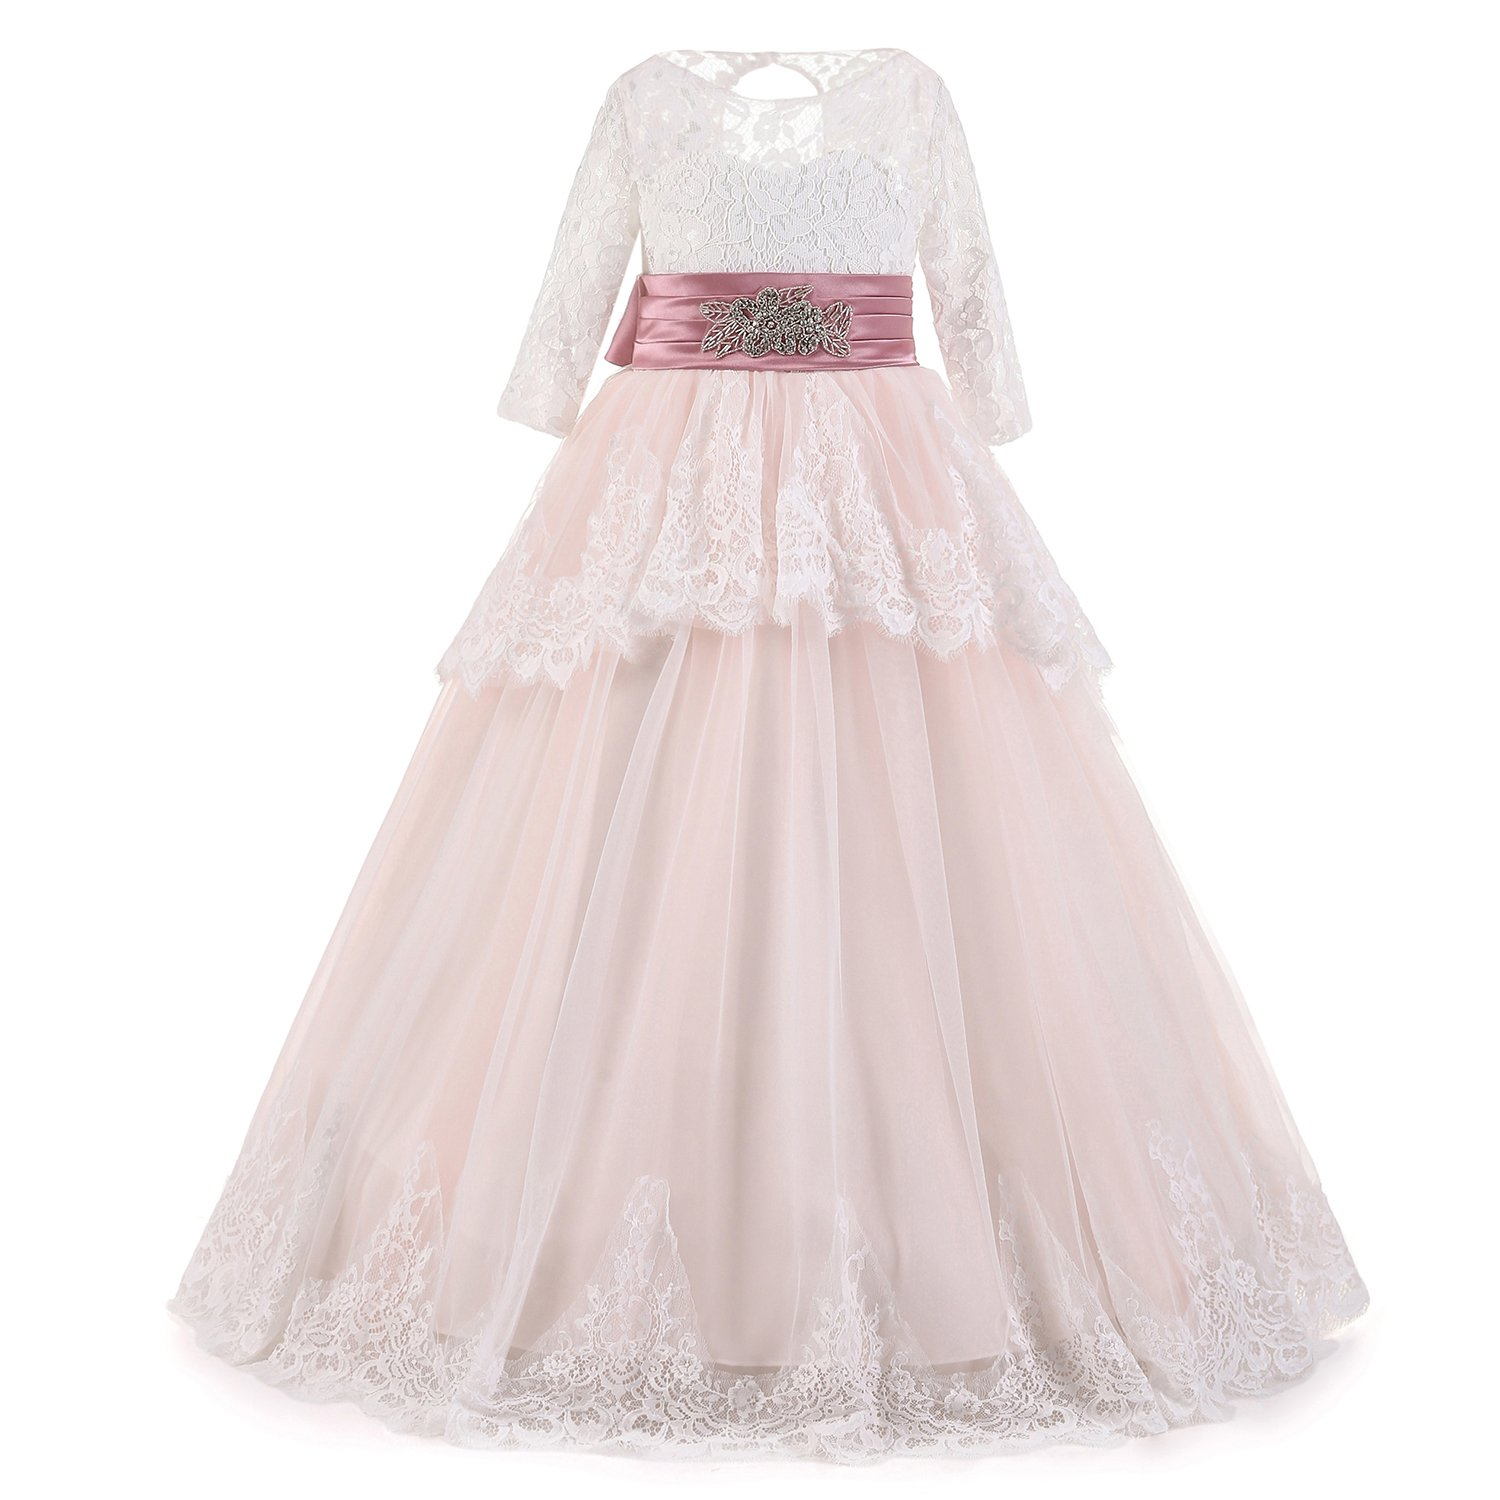 FOLOBE New Vintage Sequins Appliques Lace Flower Girls Dress for Wedding Hollow Back Bow Sash First Communion Dresses Girl Prom Gowns: Amazon.co.uk: ...